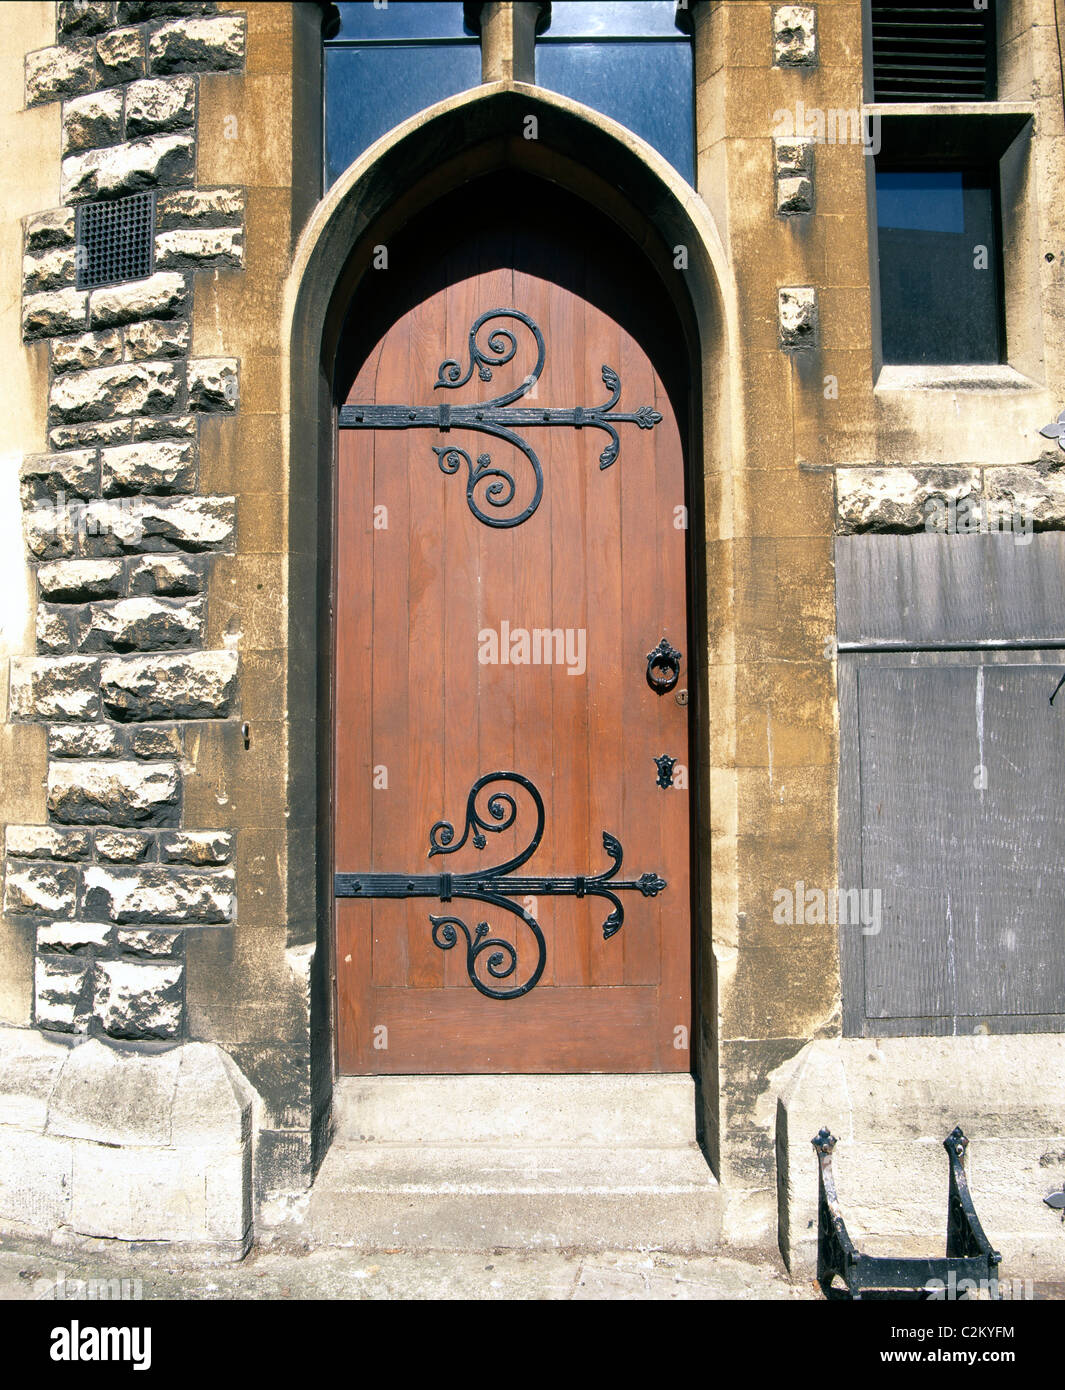 Doors - ecclesiastical type door with ornate ironmongery / hinged in rough cast stone building - Stock Image